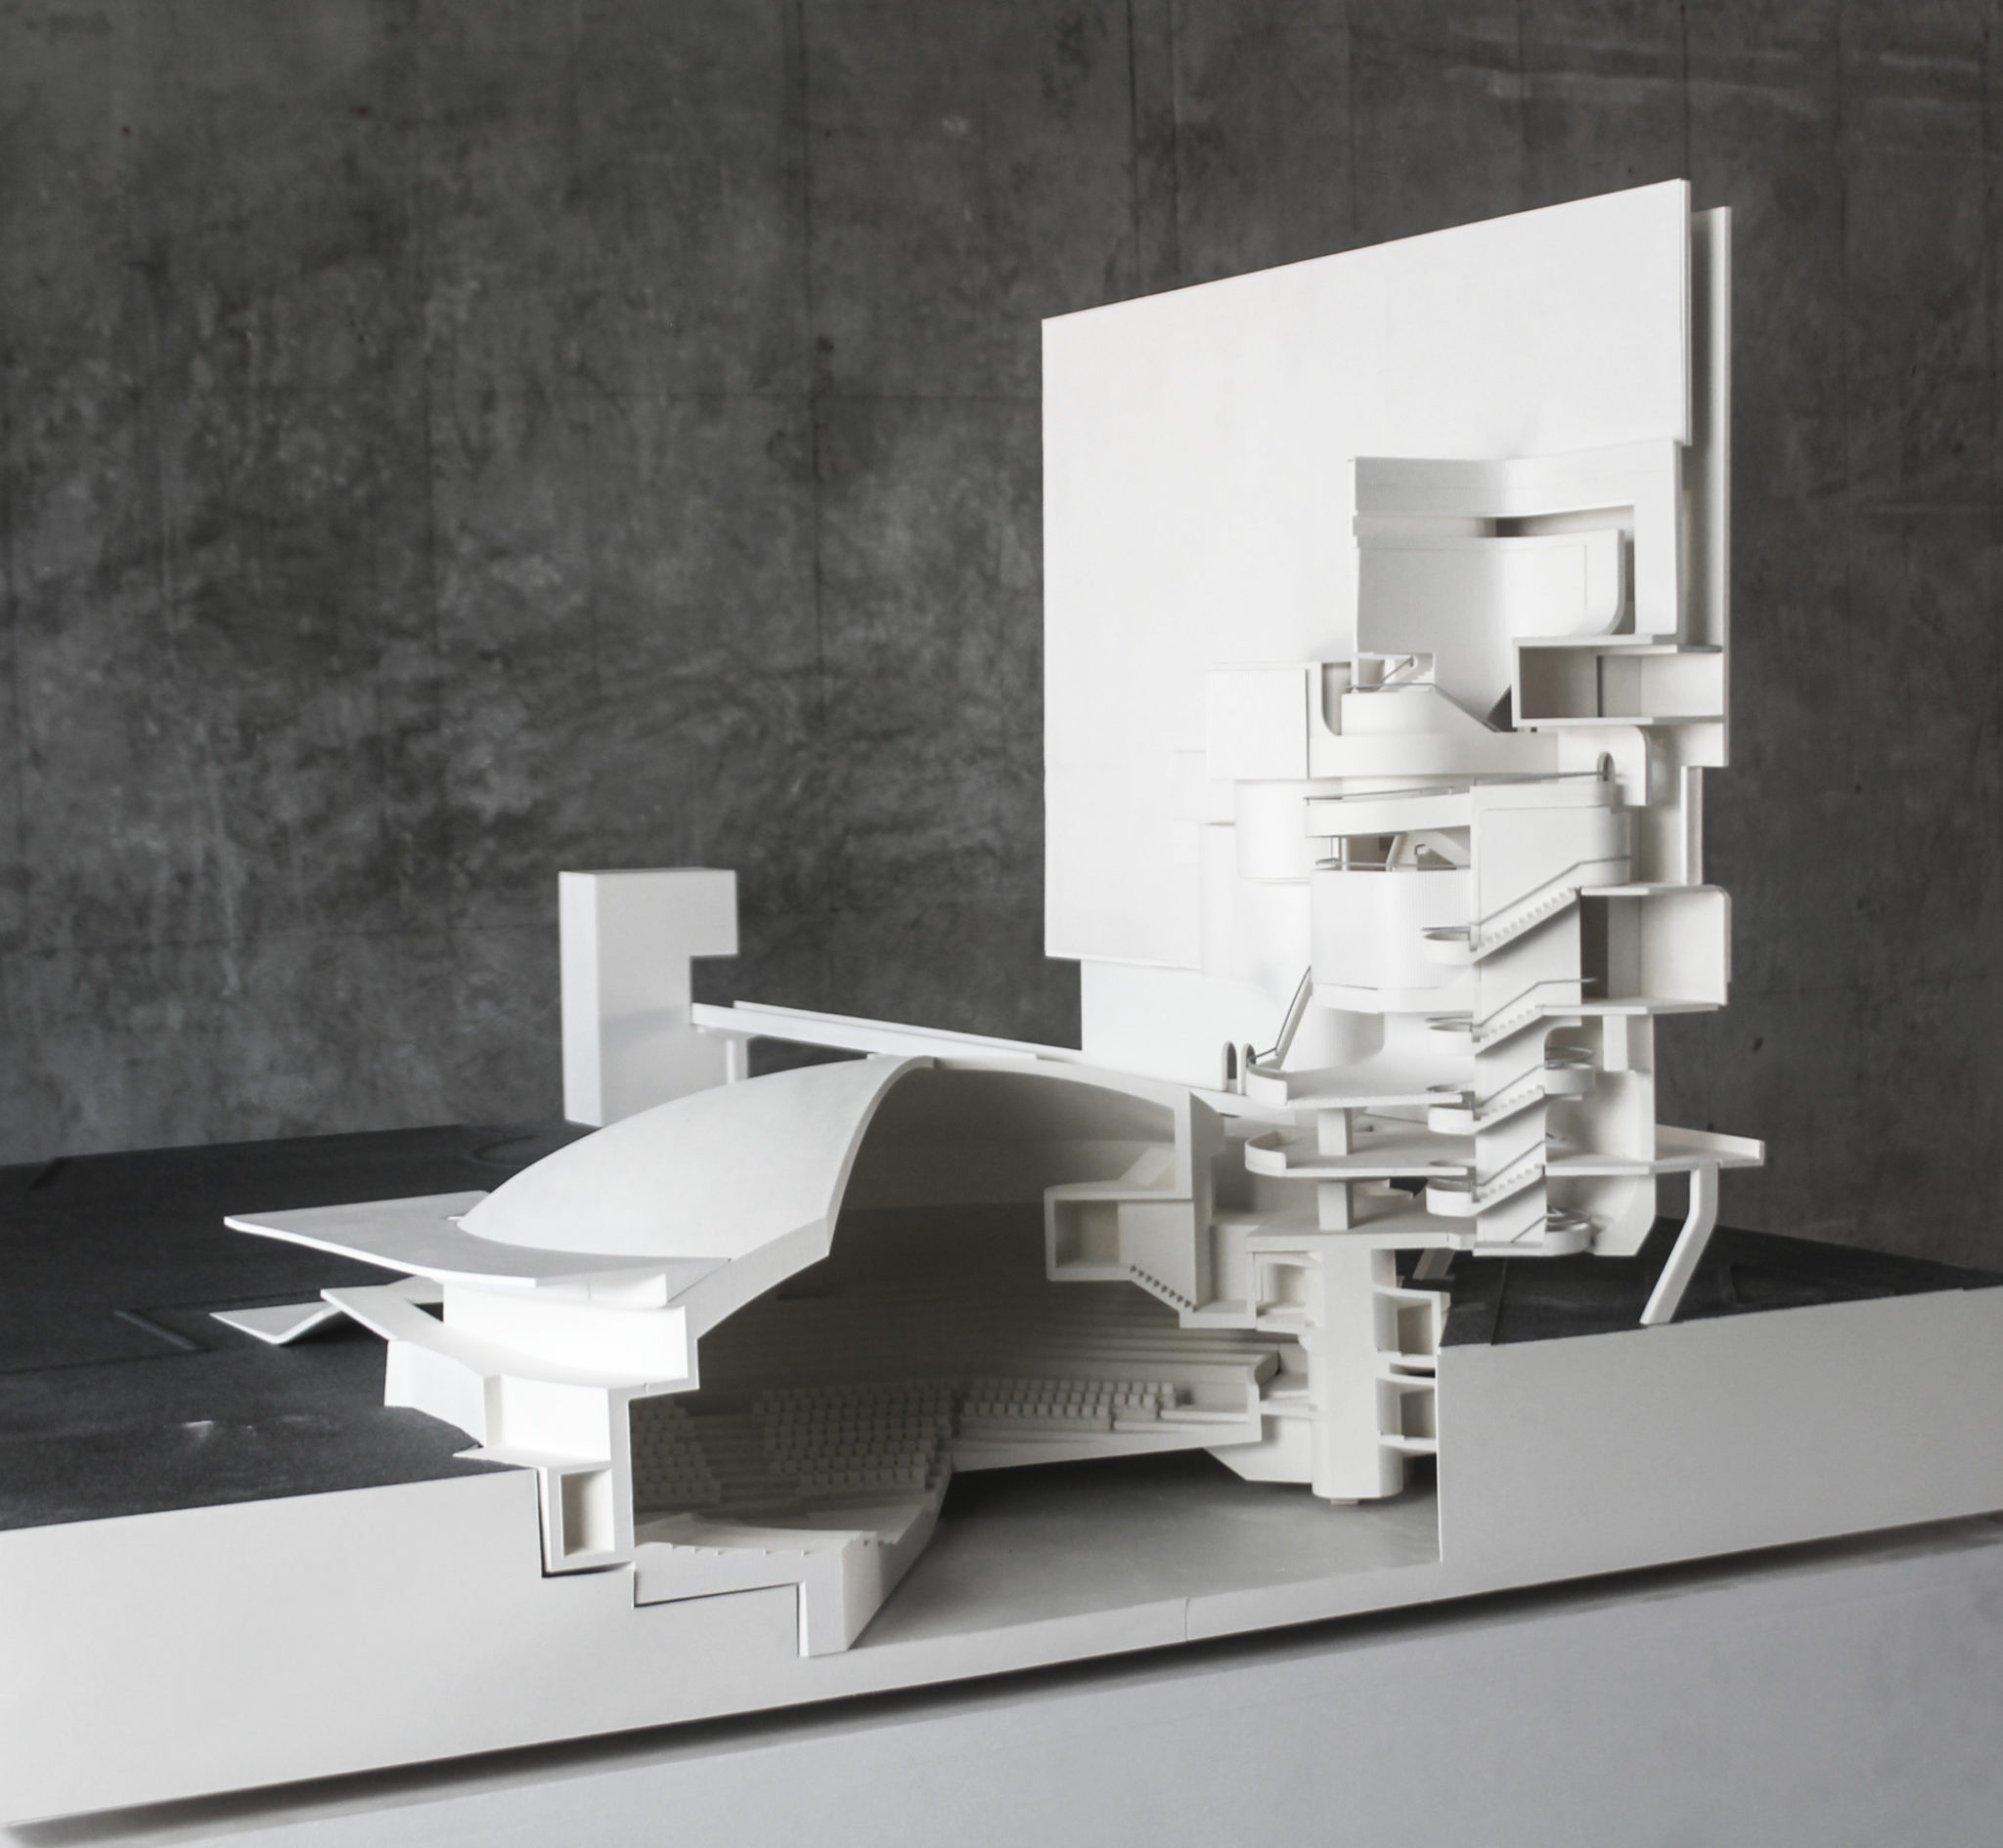 ampitheater building model by student